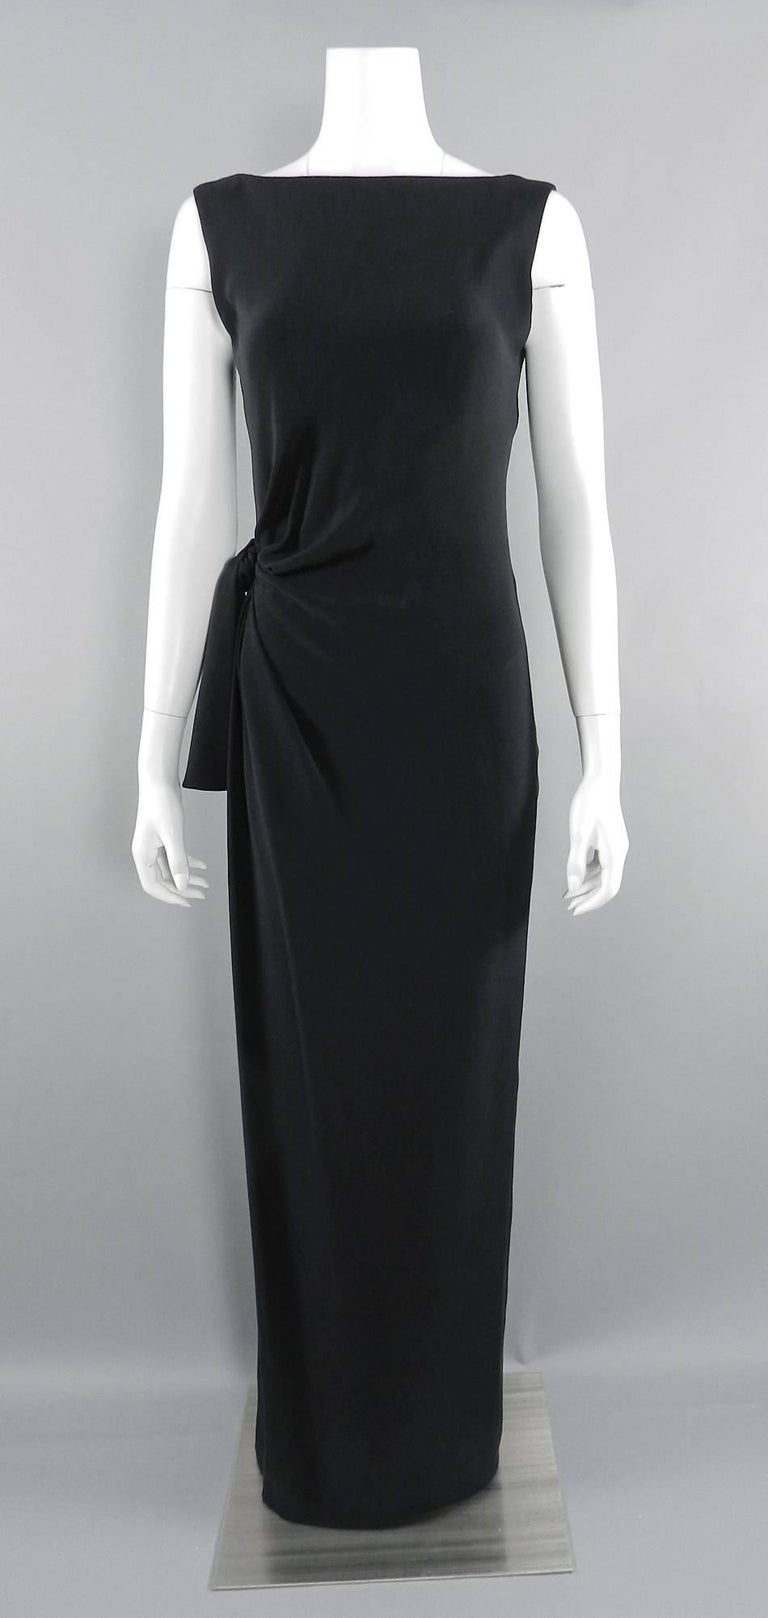 yves saint laurent aw 1998 haute couture black low back evening gown for sale at 1stdibs. Black Bedroom Furniture Sets. Home Design Ideas